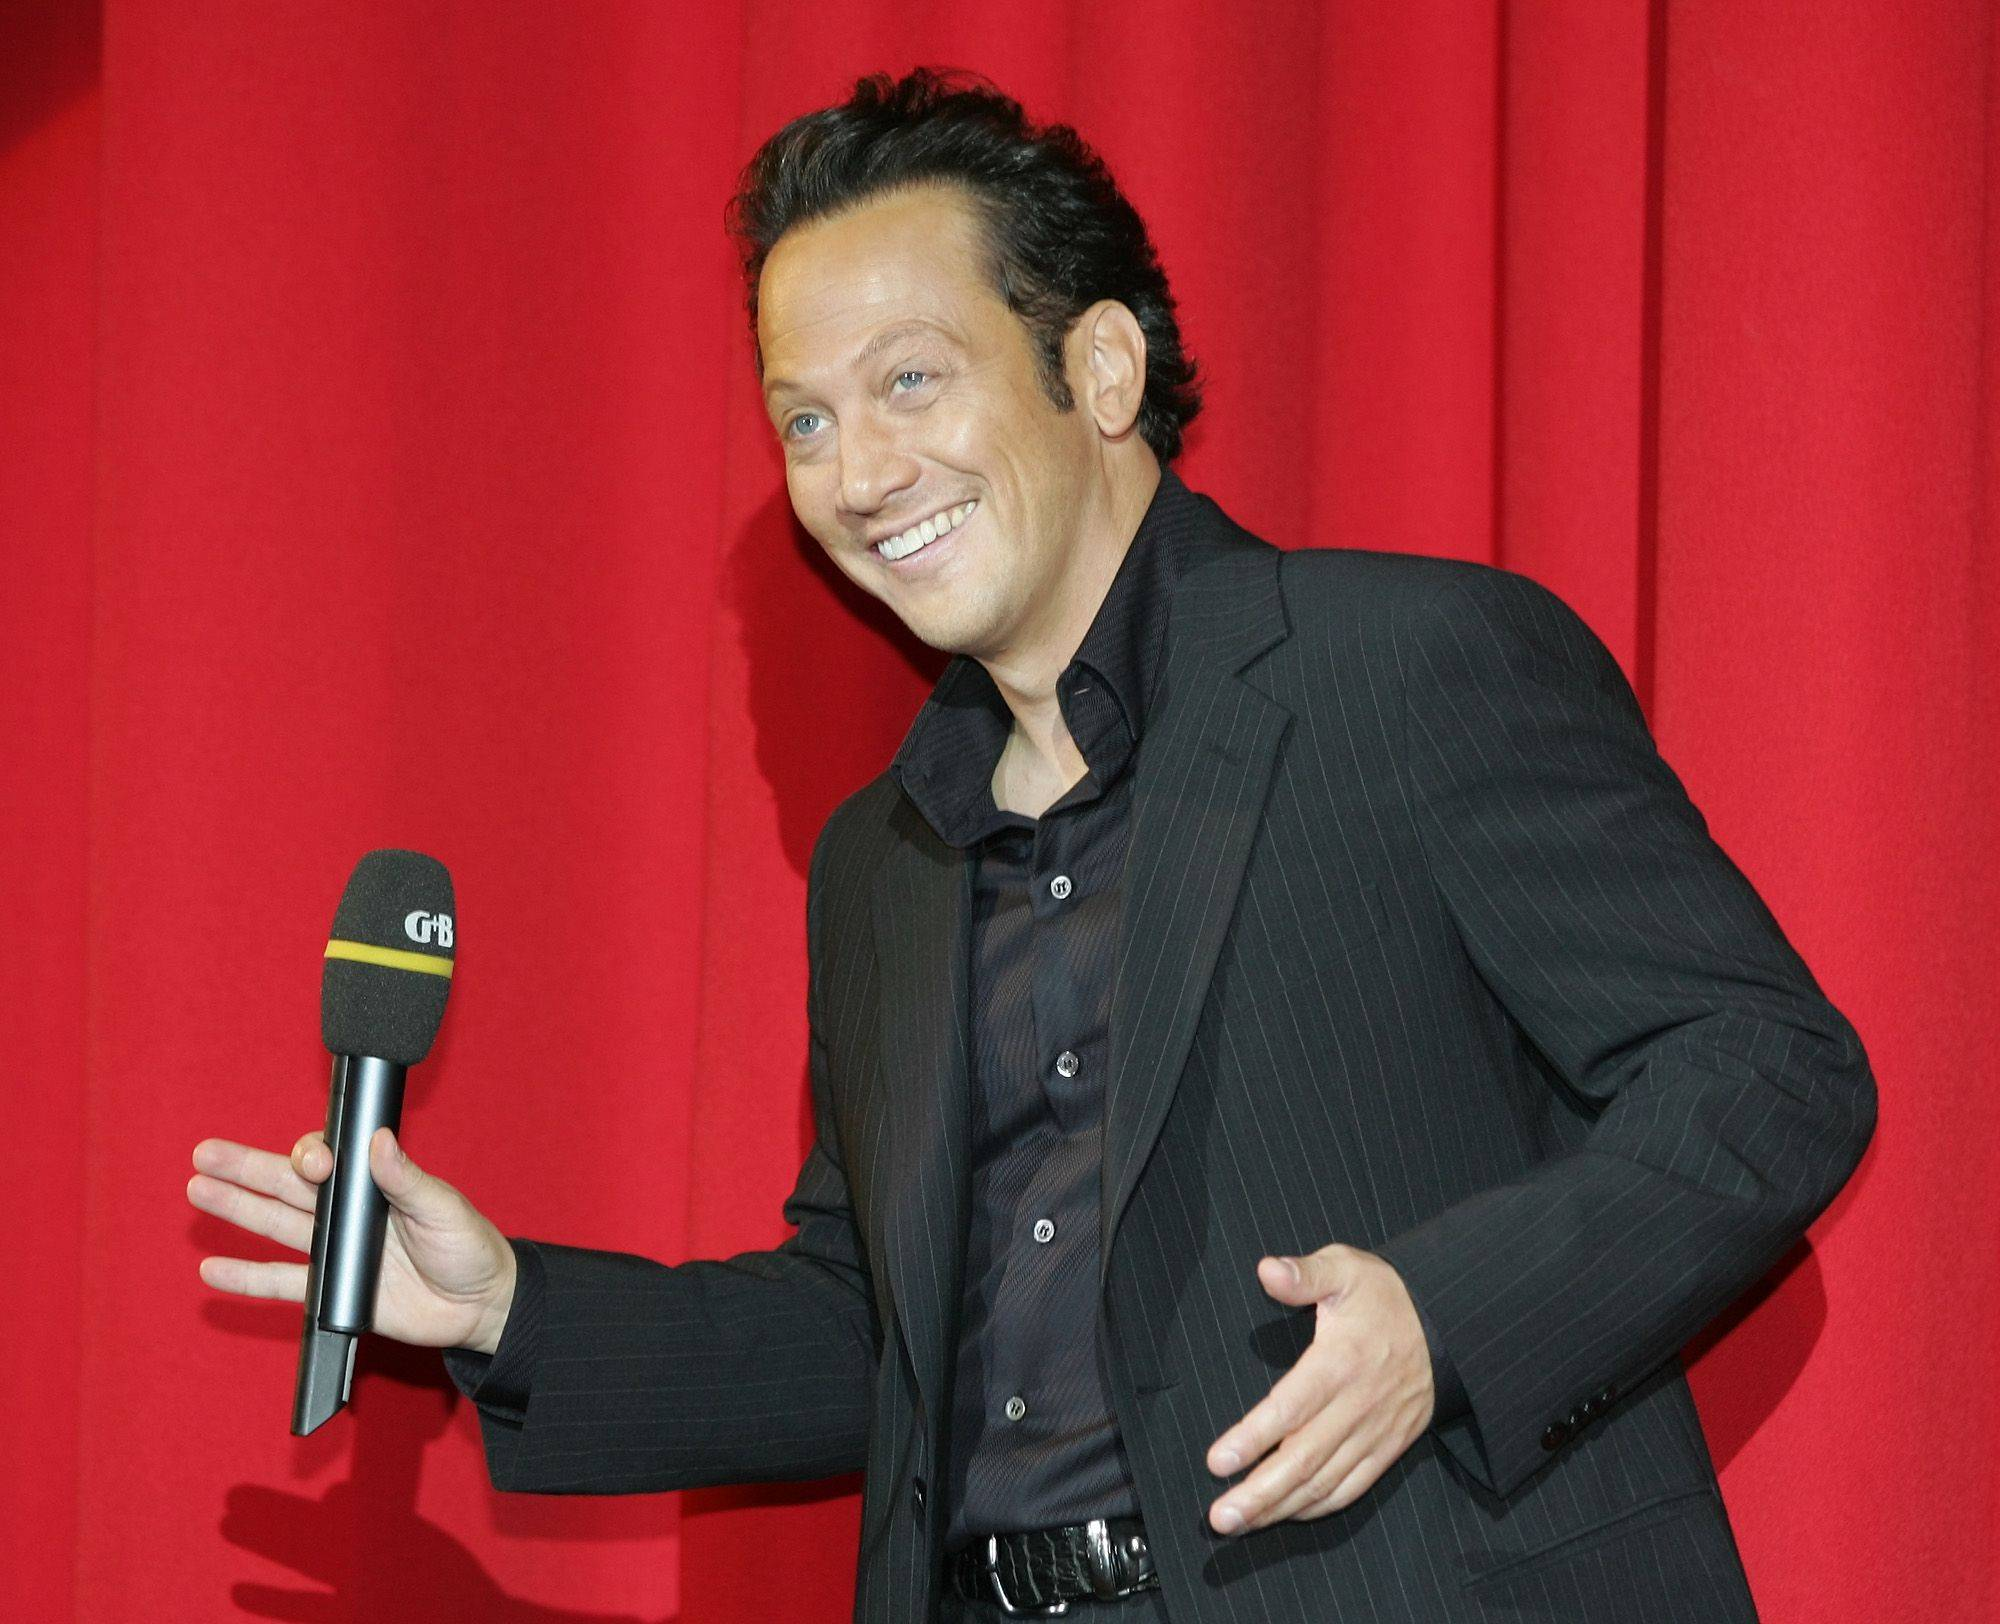 Rob Schneider makes a return to standup comedy at the Improv Comedy Showcase in Schaumburg.